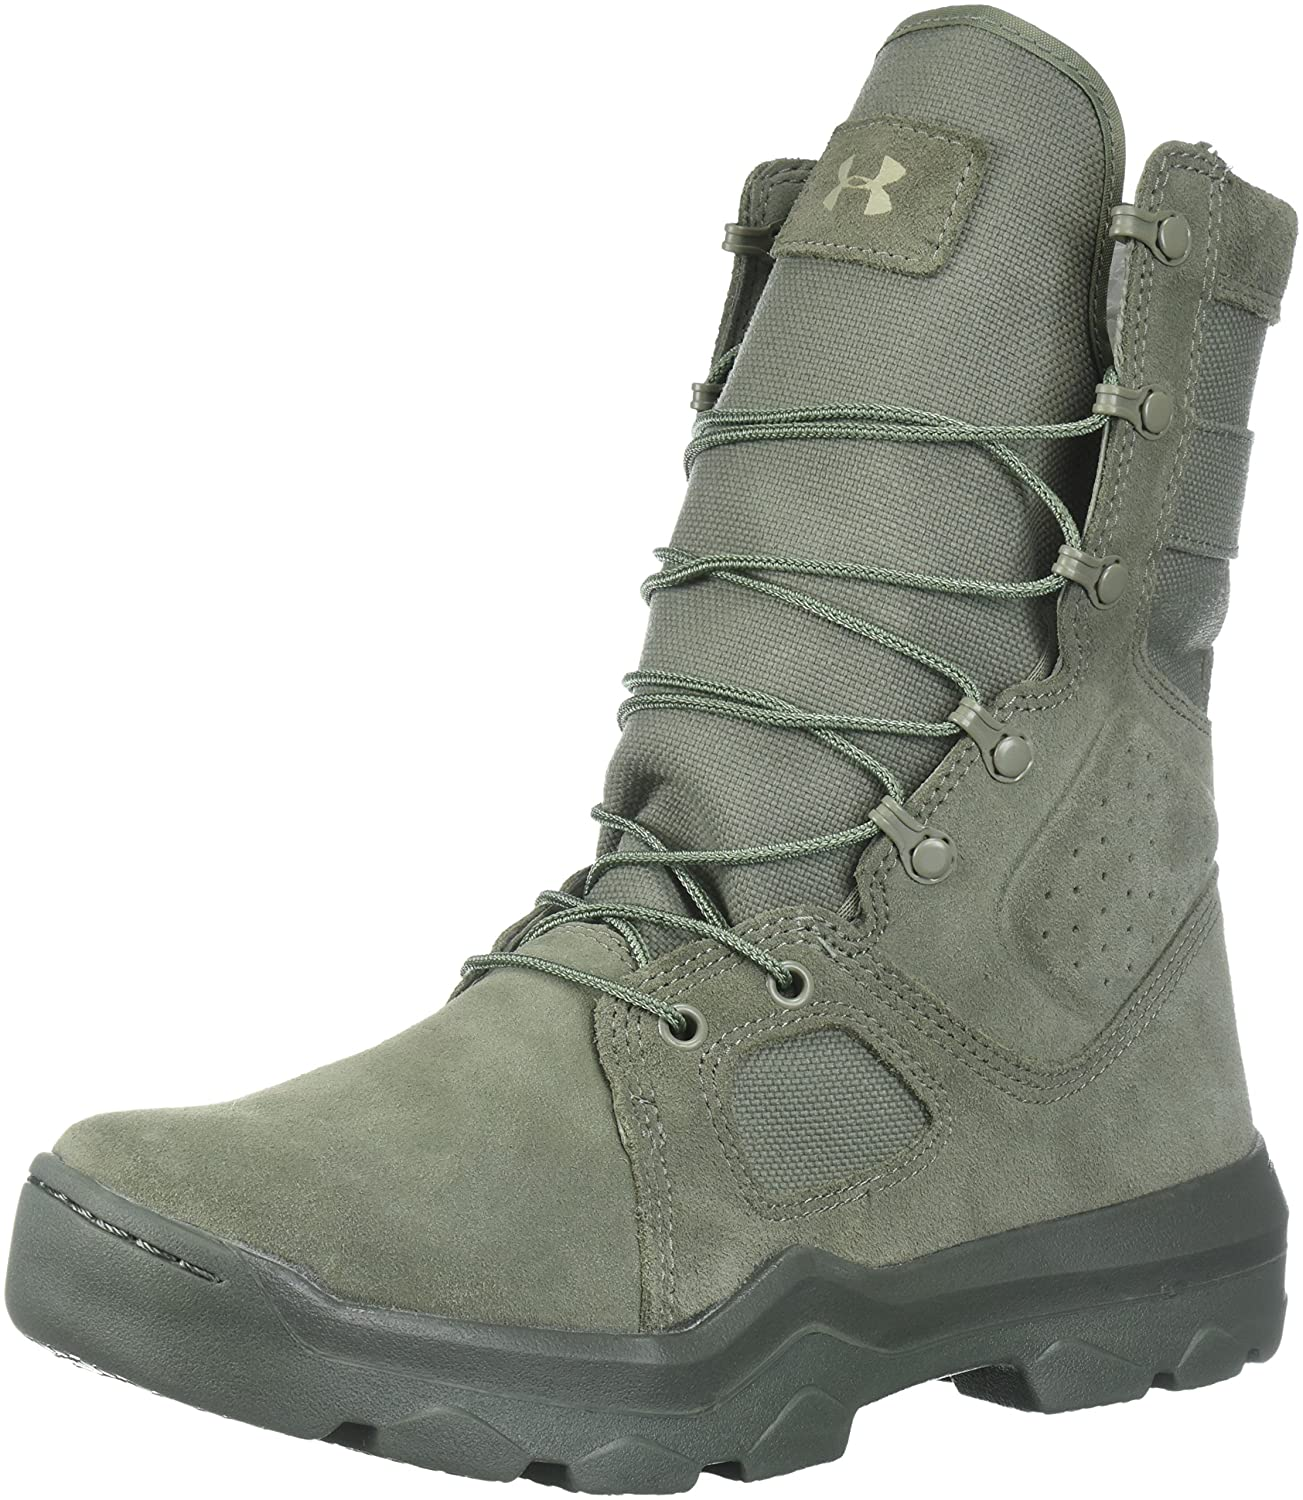 21719c32357 Under Armour Men's FNP Zip Military and Tactical Boot